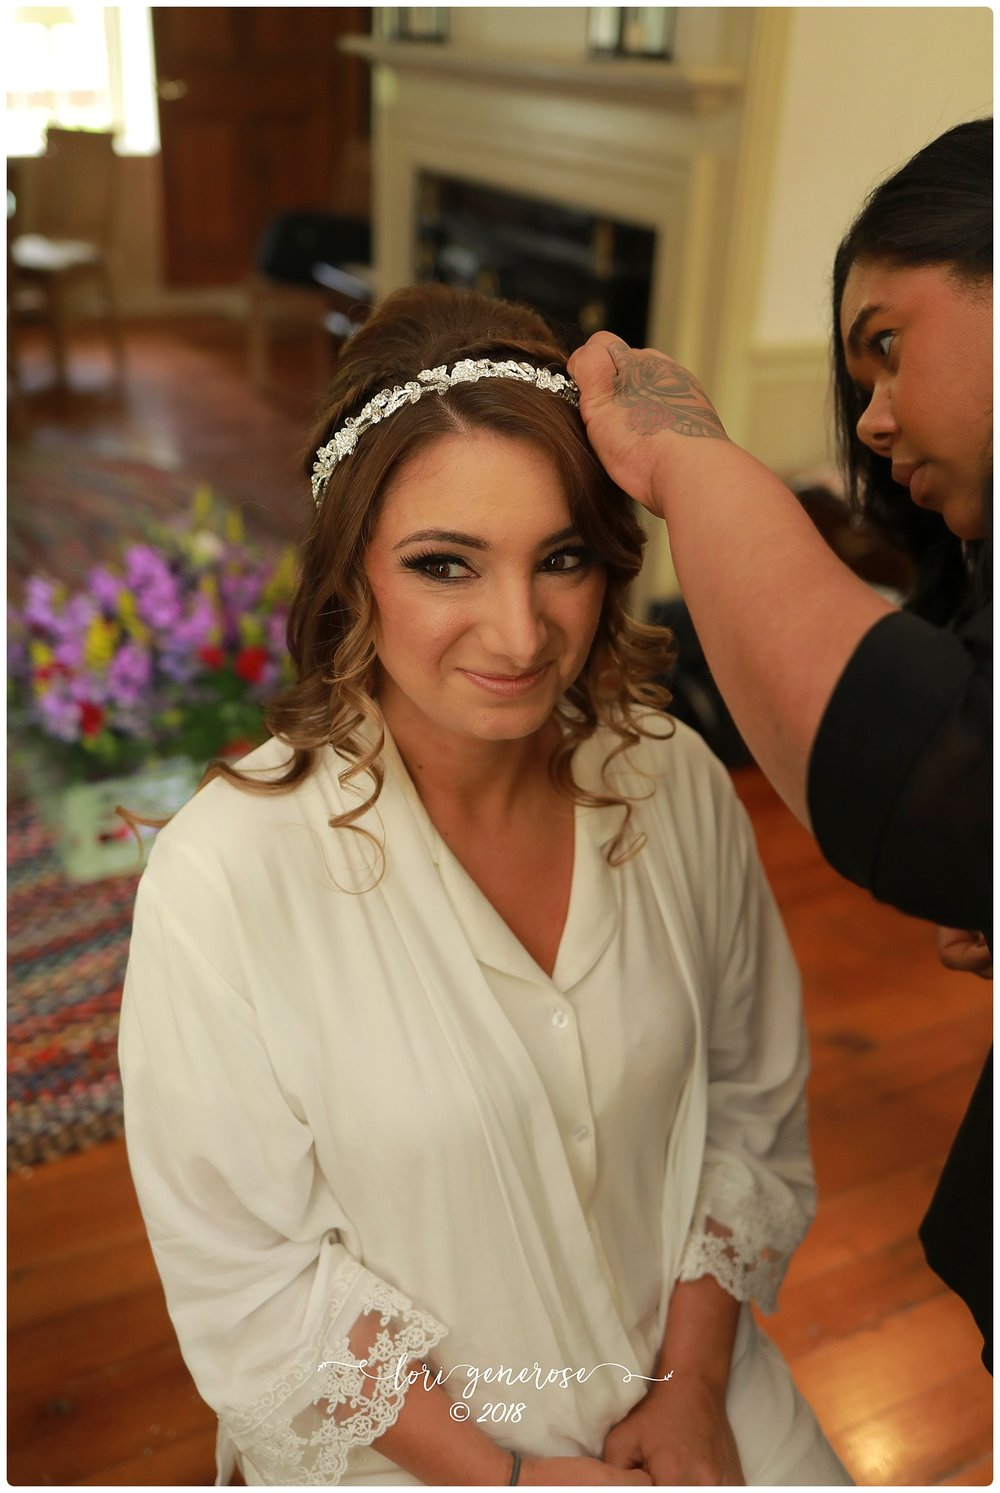 lgphotographylorigeneroseweddingbridegettingreadyweddinghair.jpg